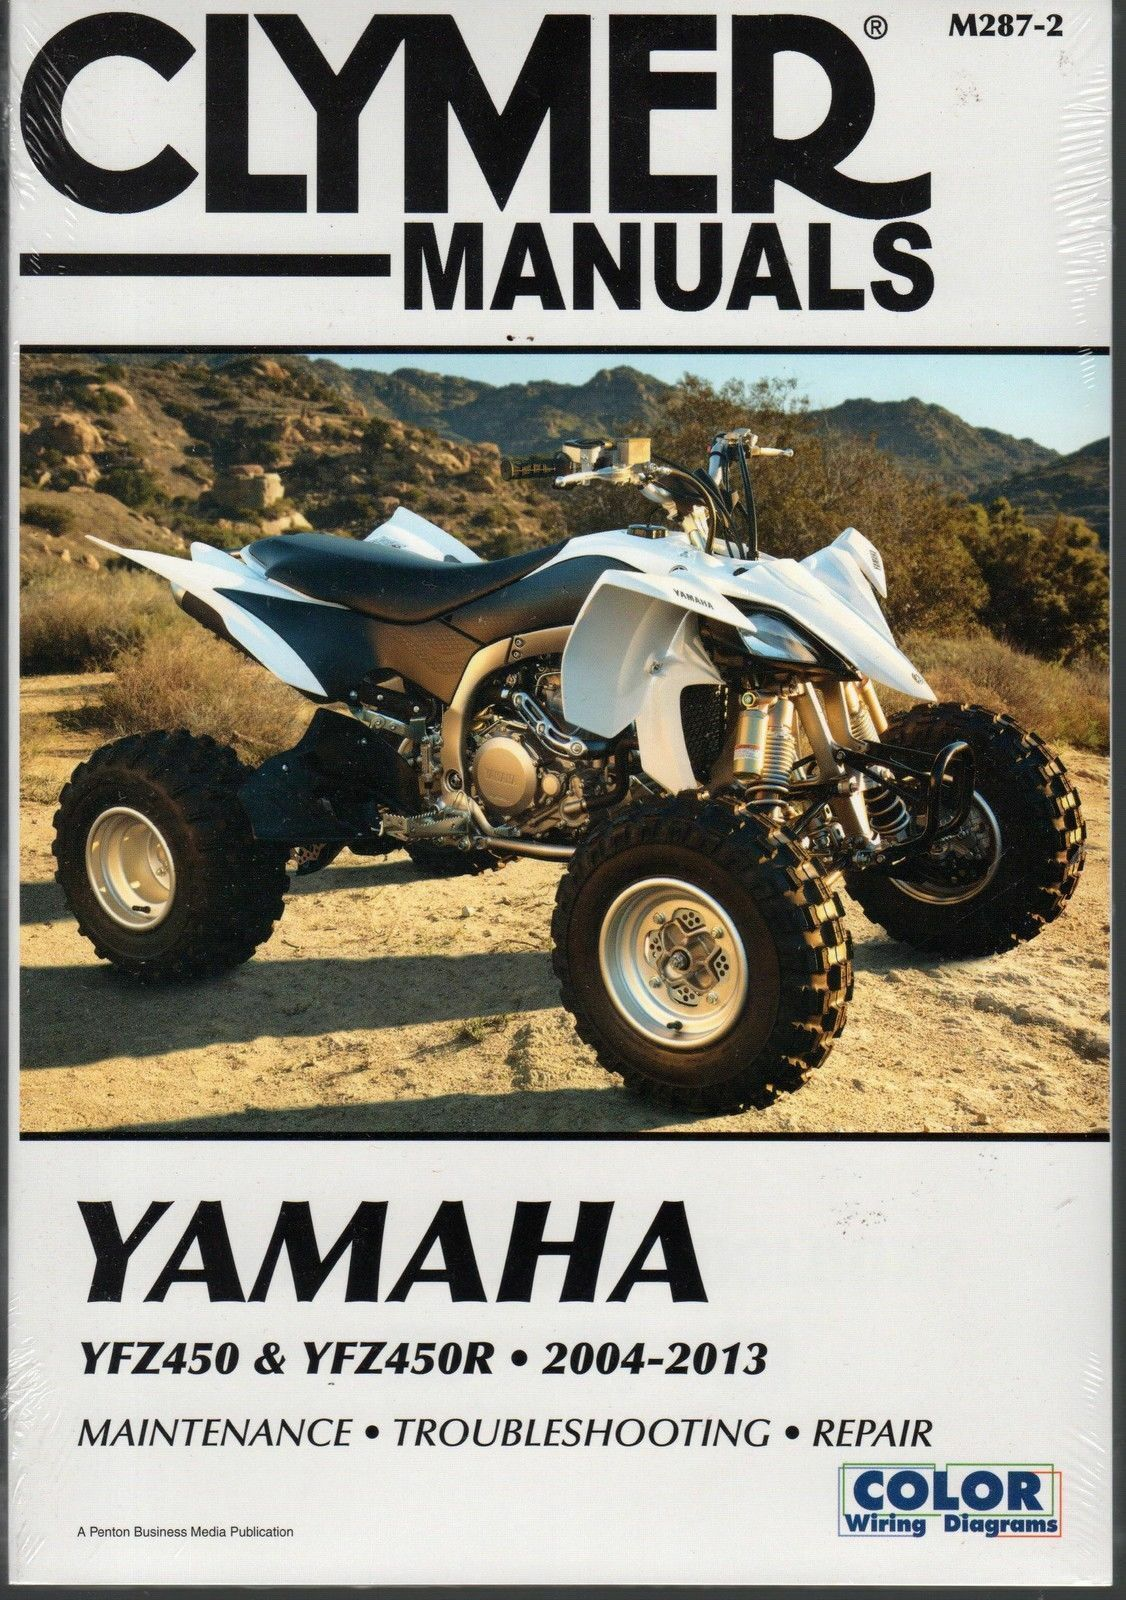 Clymer Yamaha Yfz450 Yfz 450 Service Repair Manual Free Ship 1 of 2FREE  Shipping ...